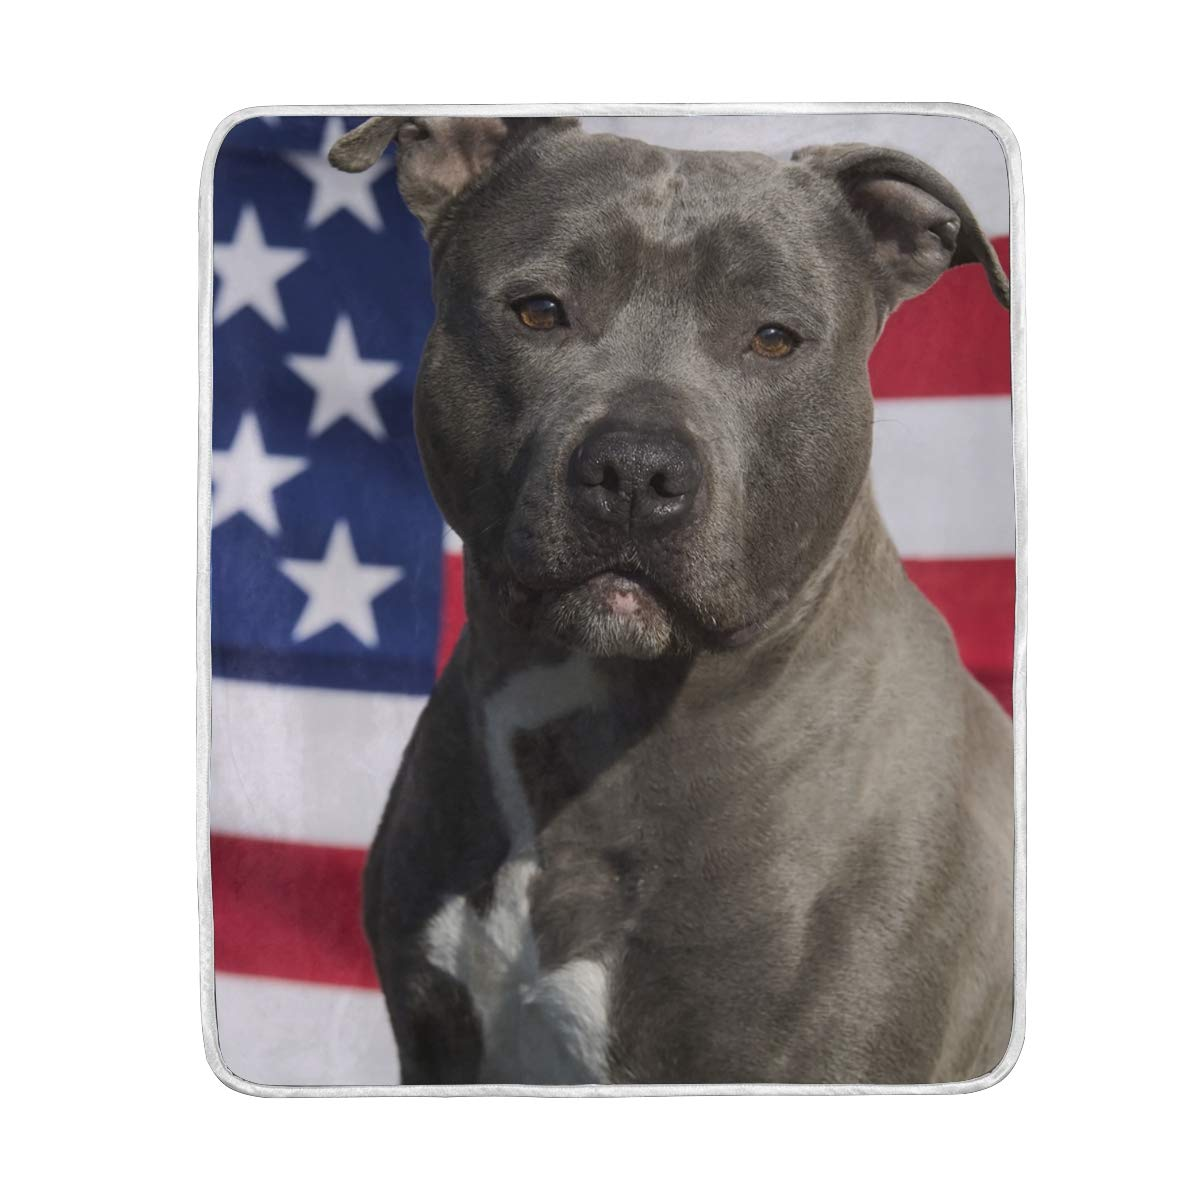 Pitbull American Flag Dog Throw Blanket Soft Warm Cozy Bed Couch Lightweight Polyester Microfiber Size 50'' W x 60'' L for Kids Women Boy